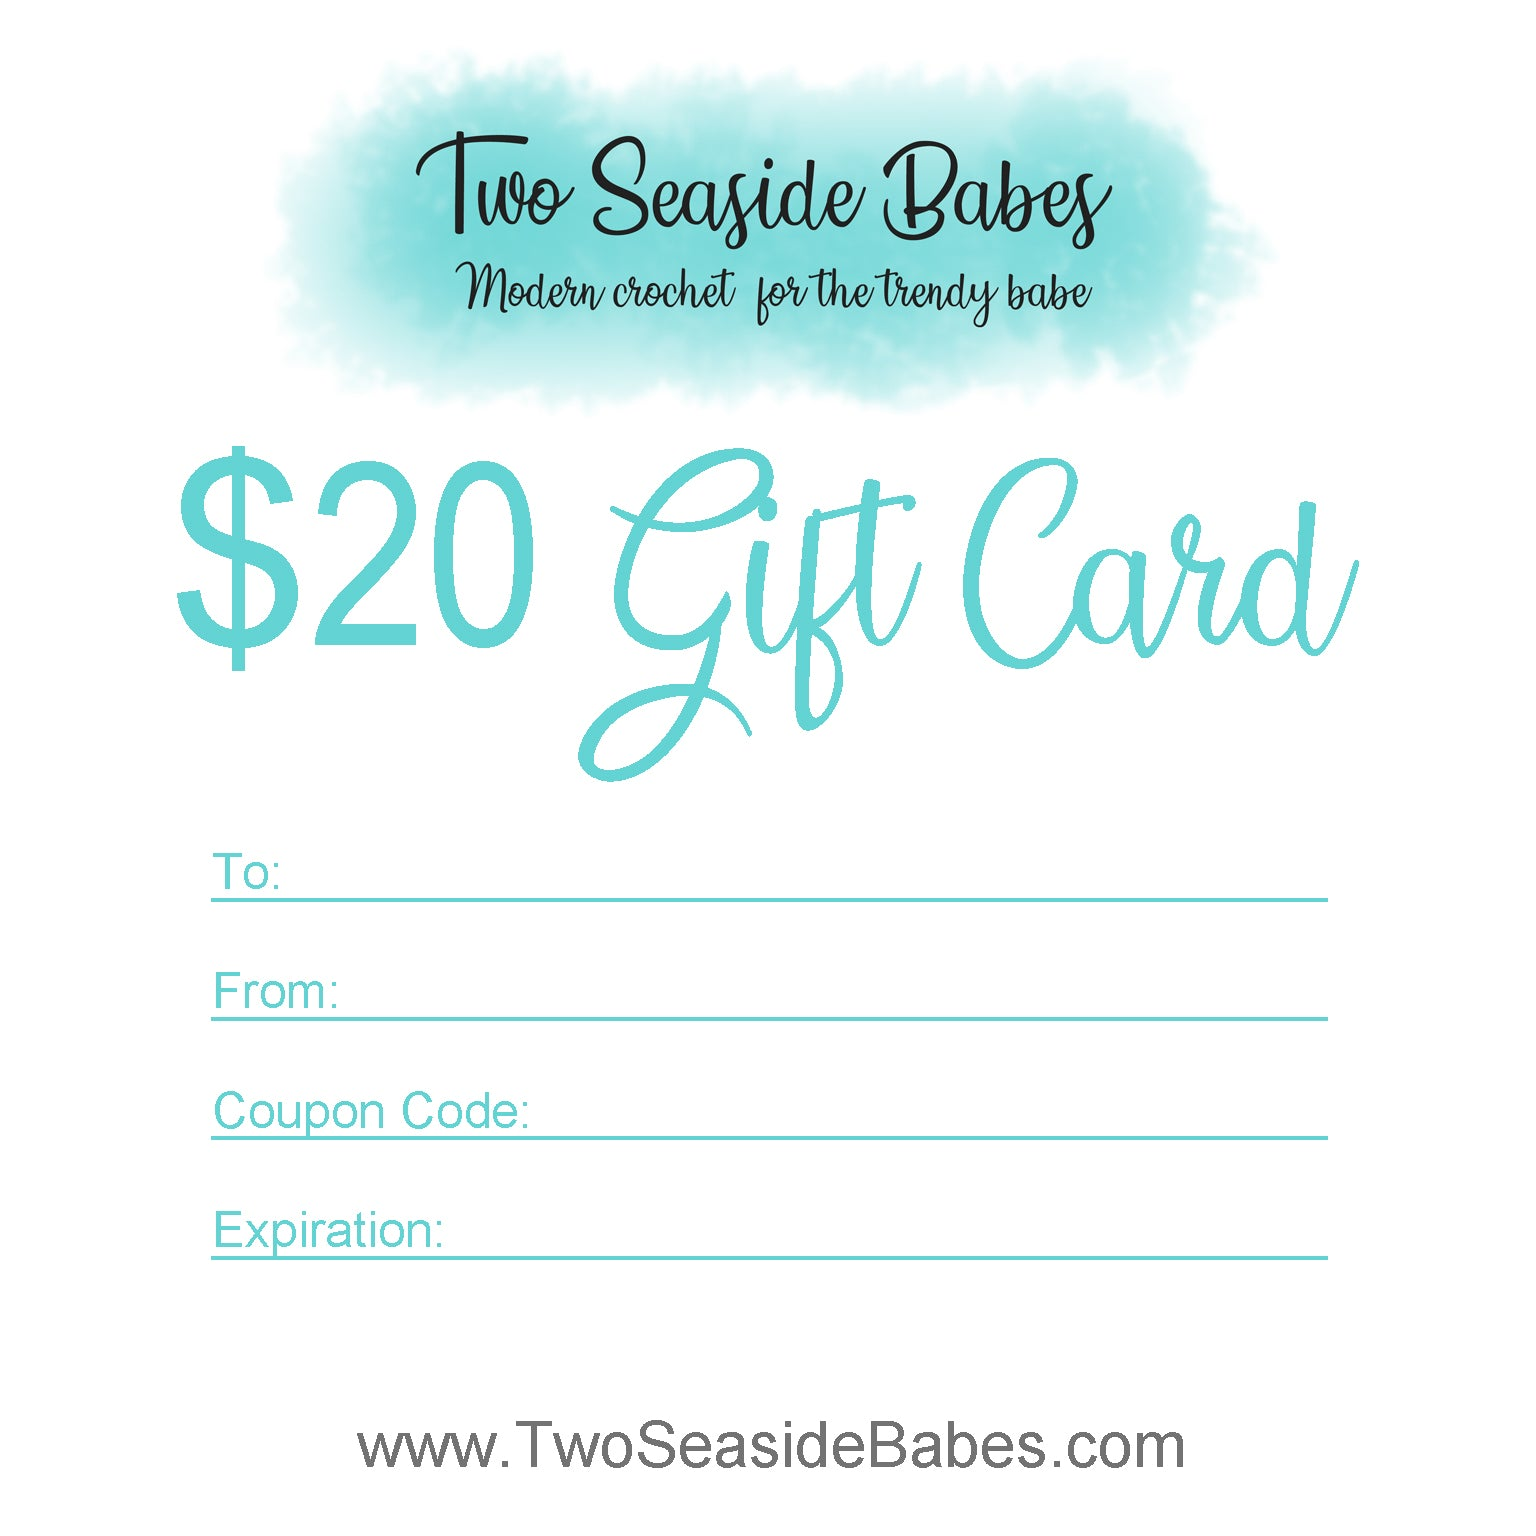 $20 Two Seaside Babes Gift Card